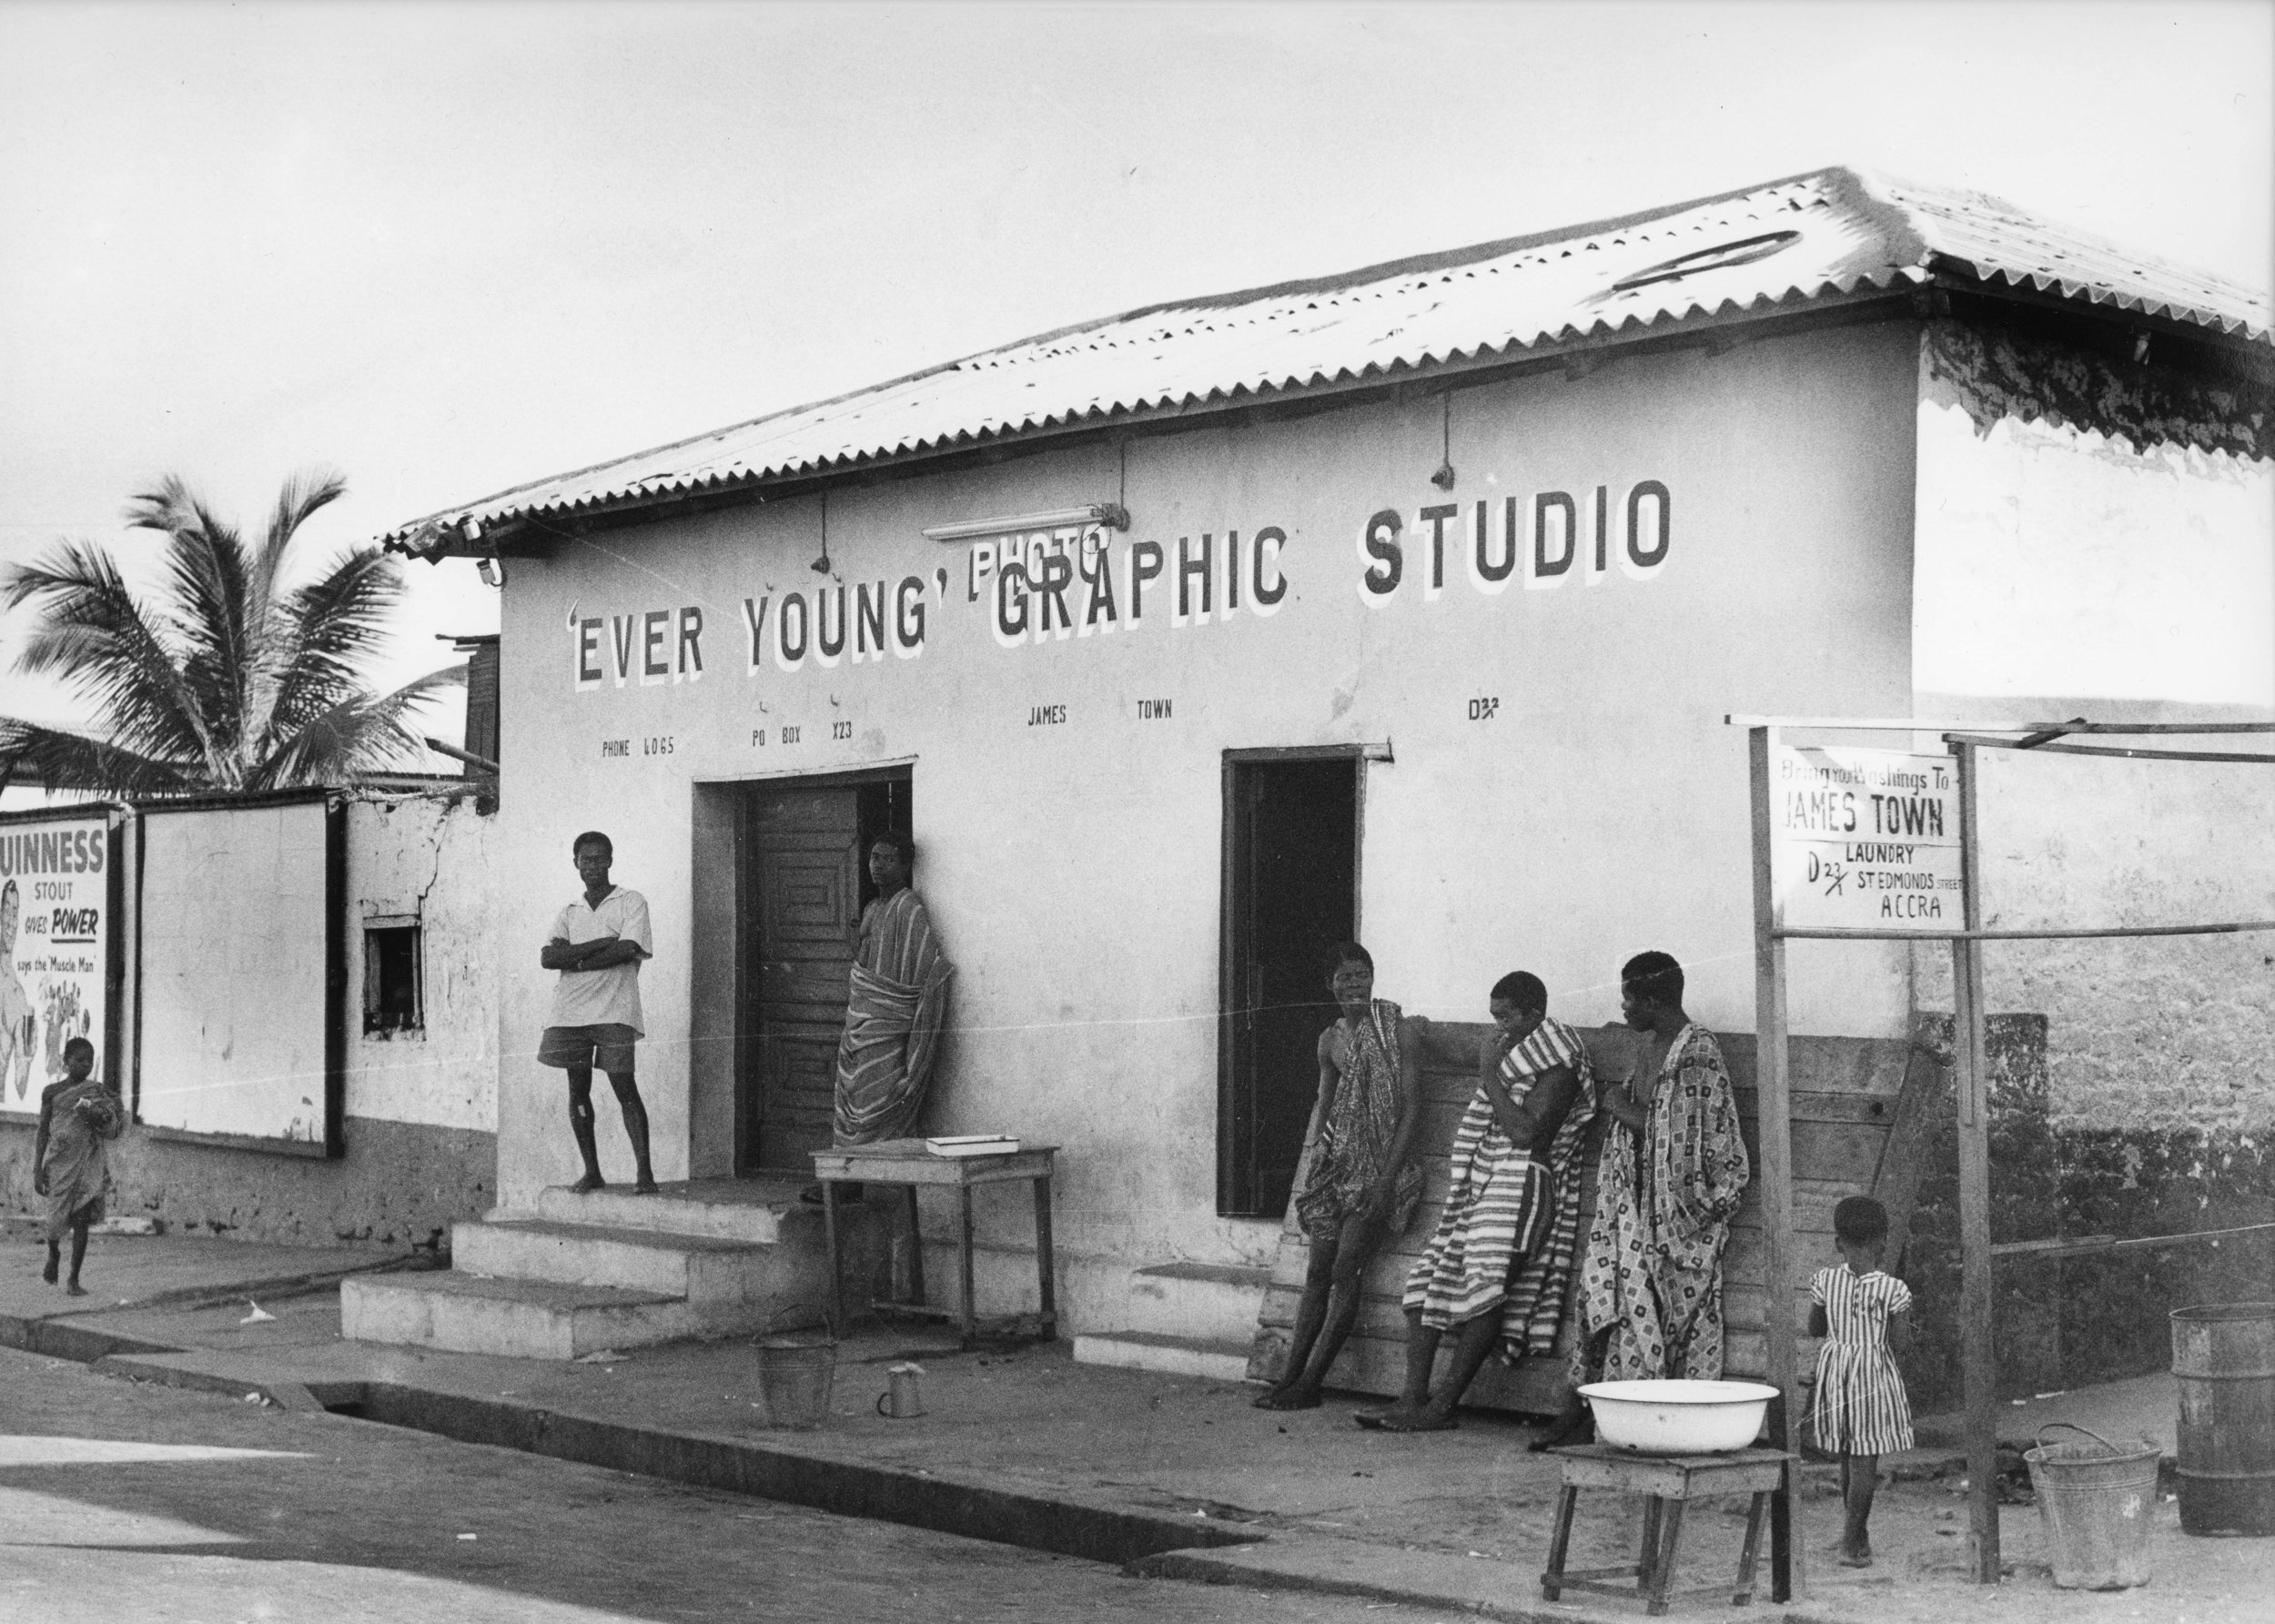 James Barnor's Ever Young studio in Jamestown, Accra, 1956.